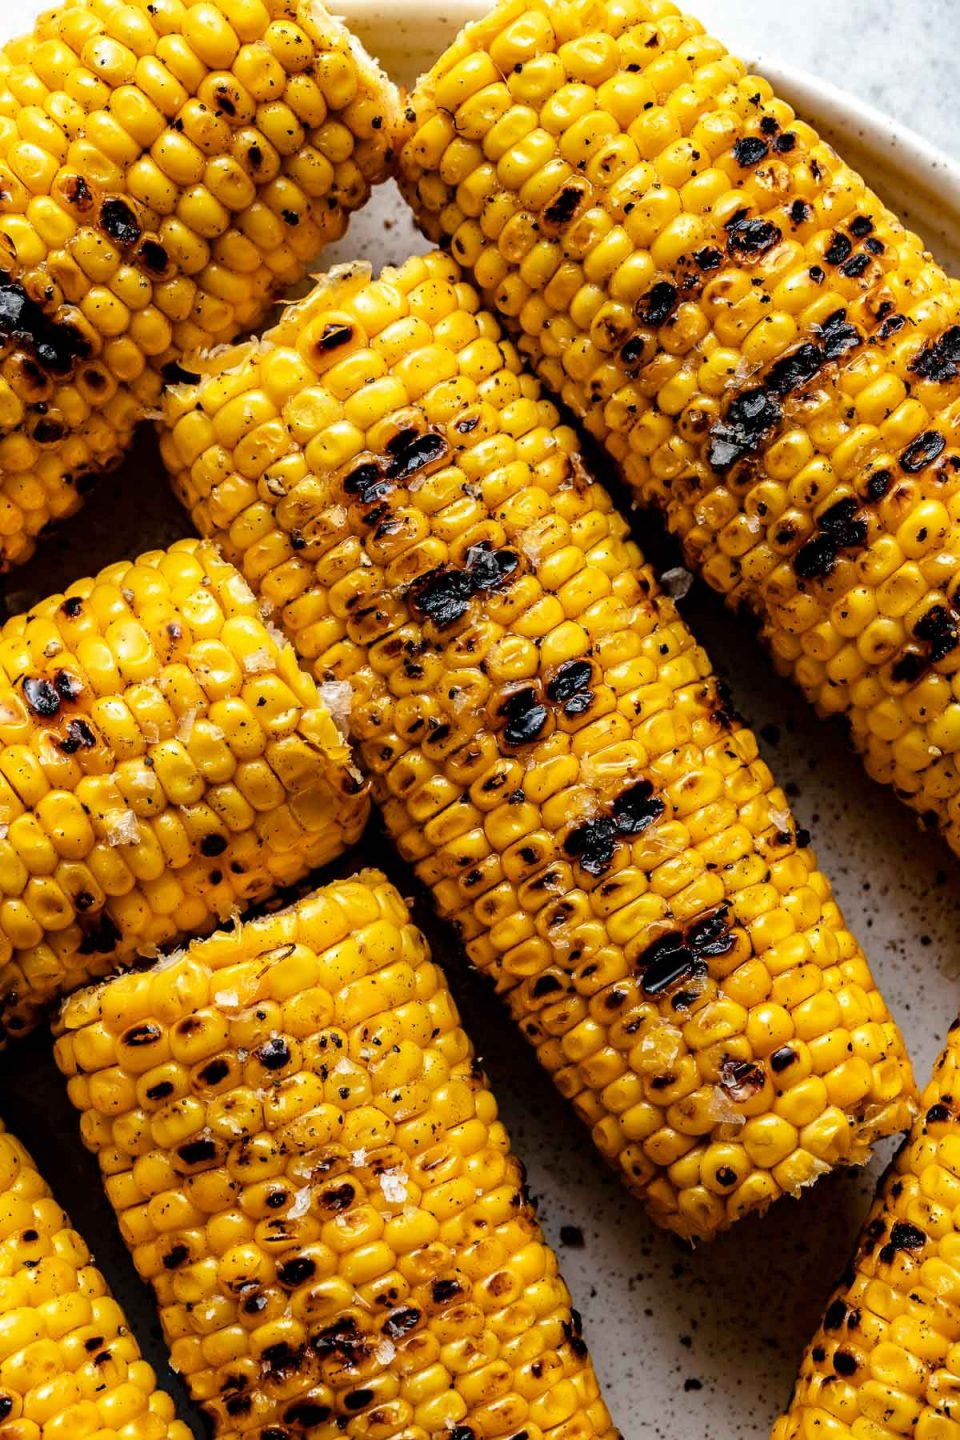 Close up of grilled corn with char marks arranged on a white speckled ceramic plate. The corn is garnished with ground black pepper & kosher salt.